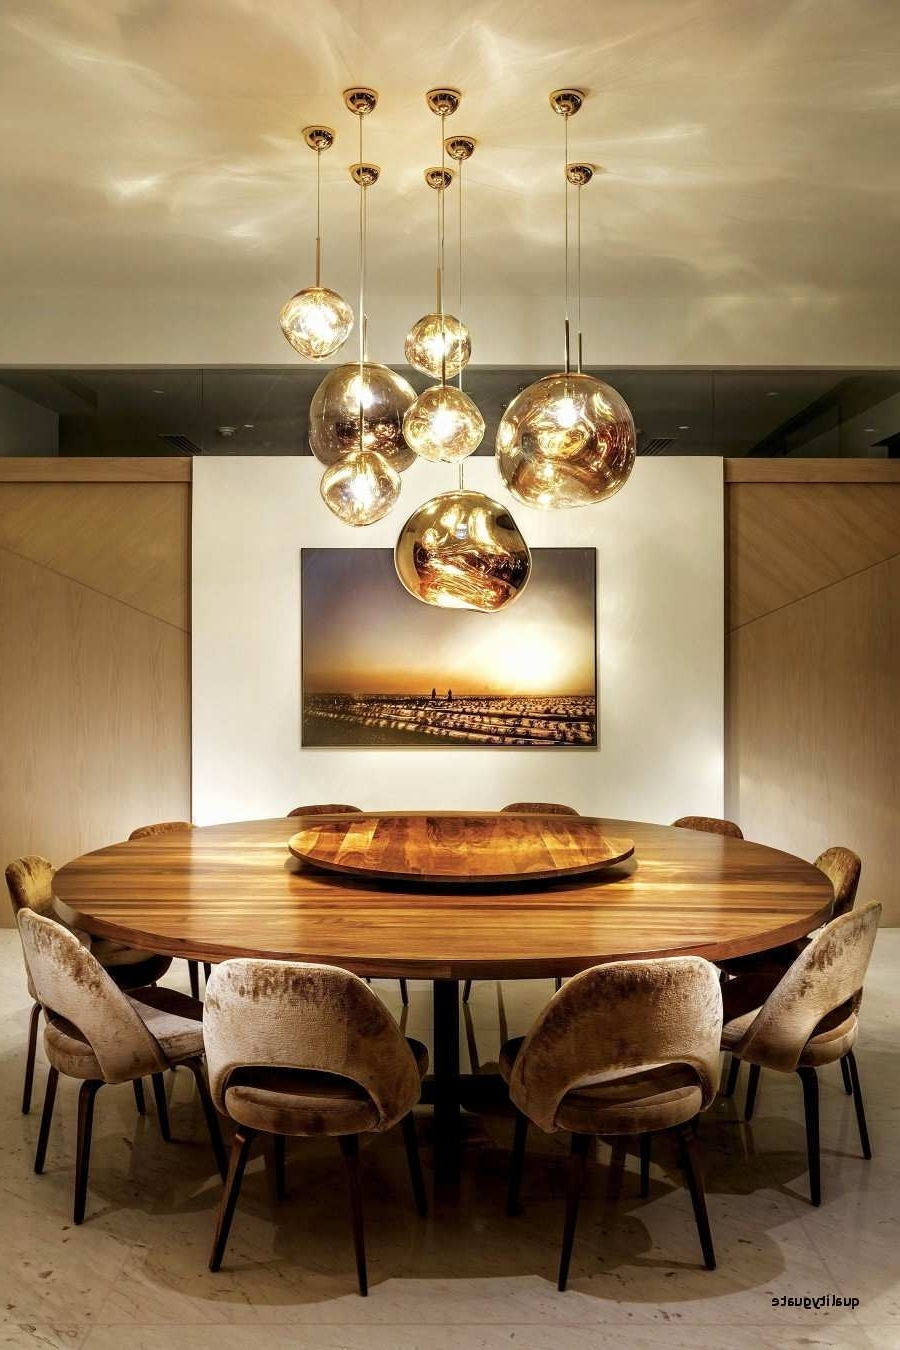 Widely Used Dining Tables For Small Spaces That Expand Awesome 22 Latest Over Intended For Dining Tables Lighting (View 25 of 25)